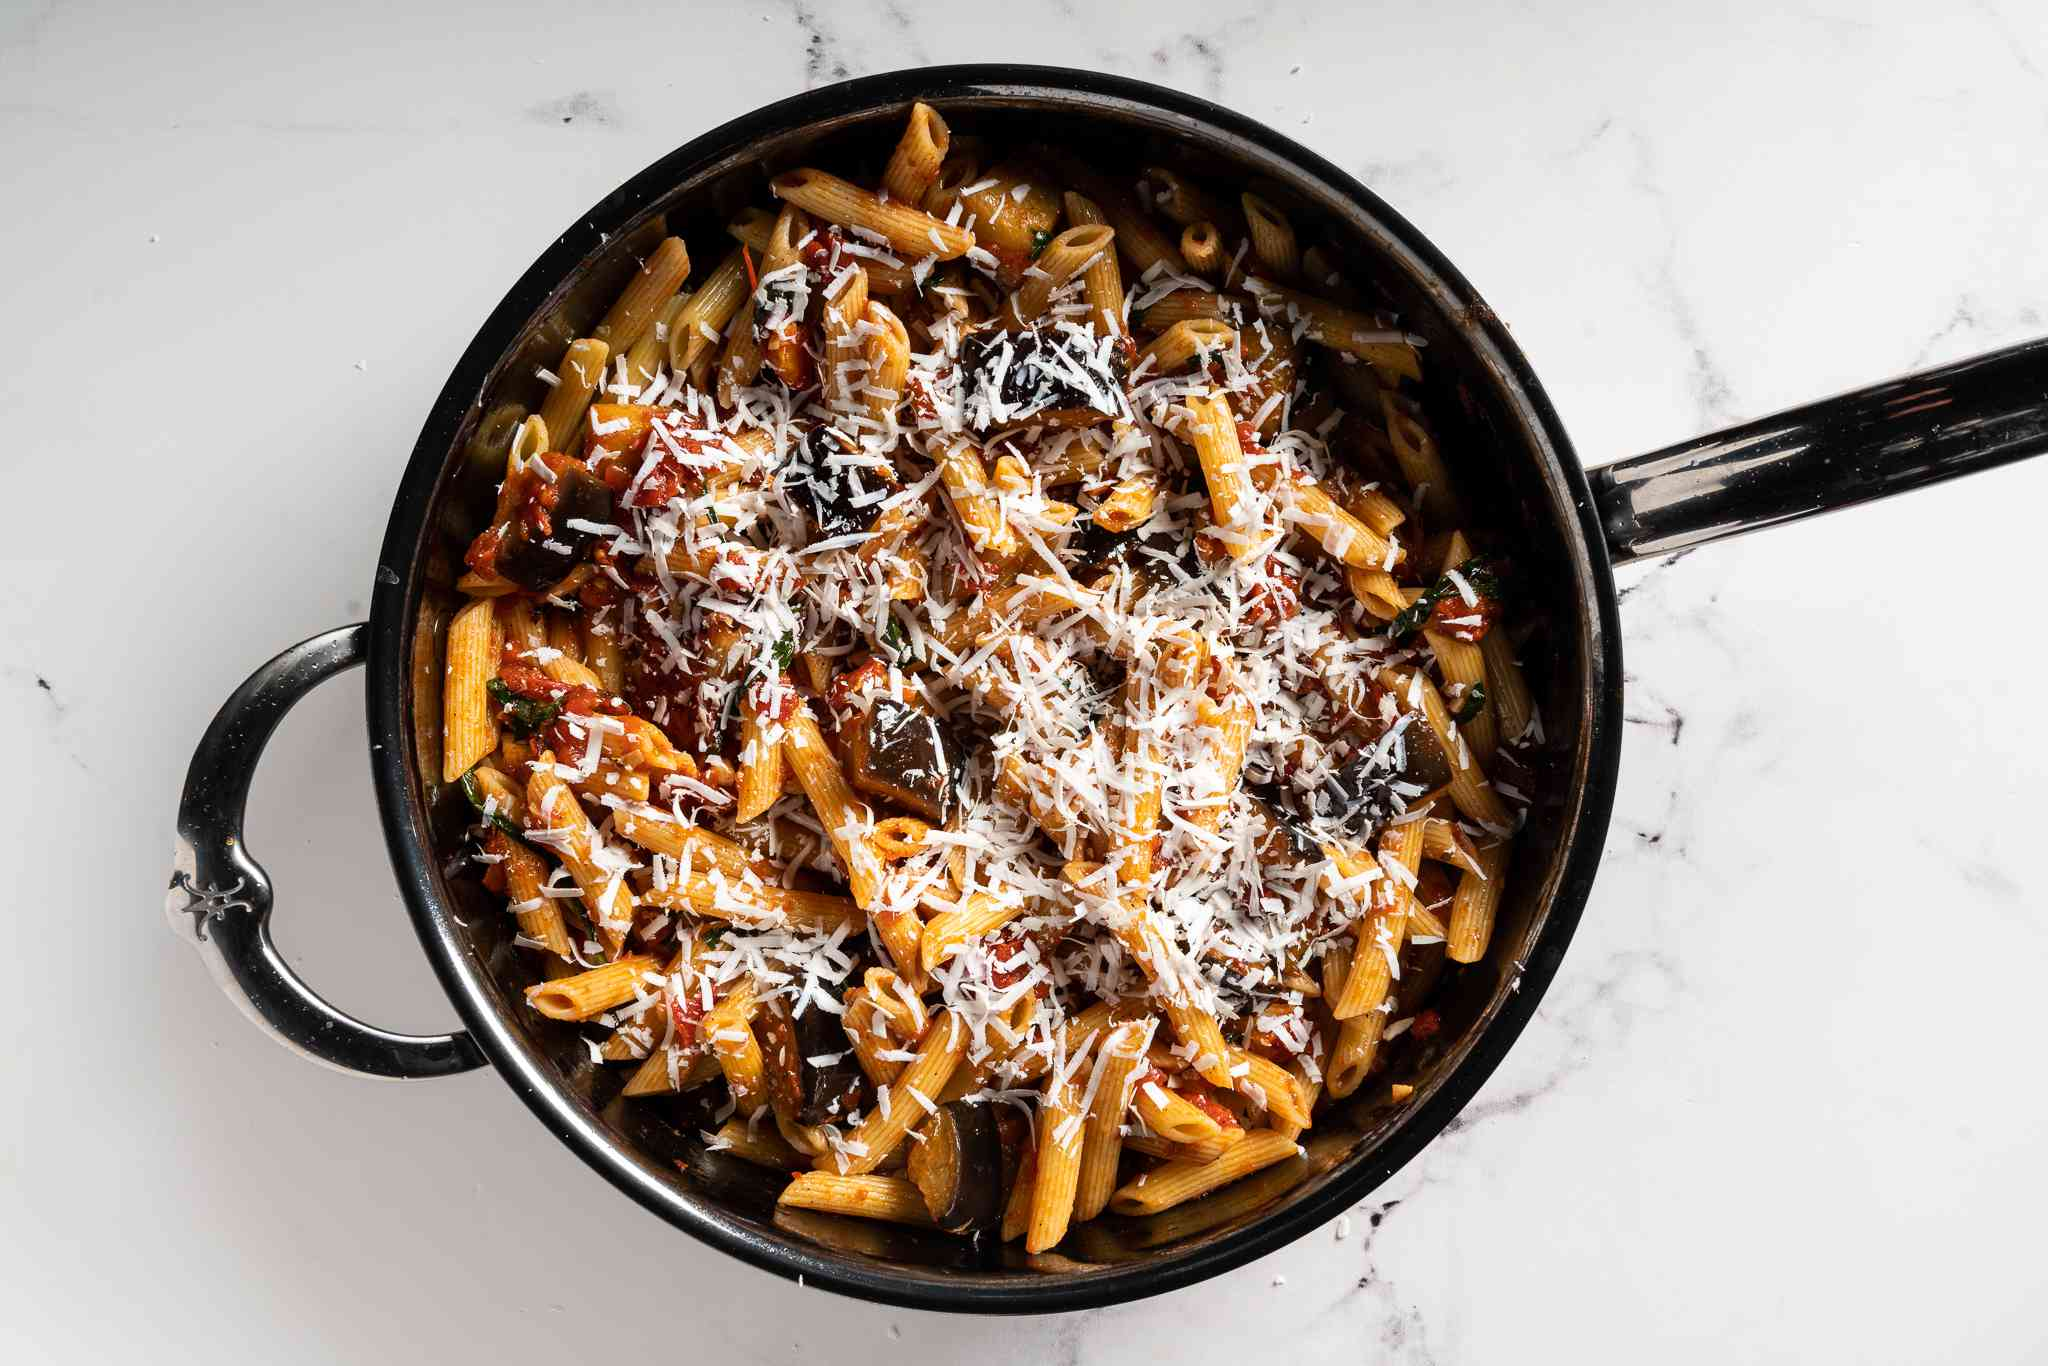 Pasta alla Norma in skillet topped iwth cheese